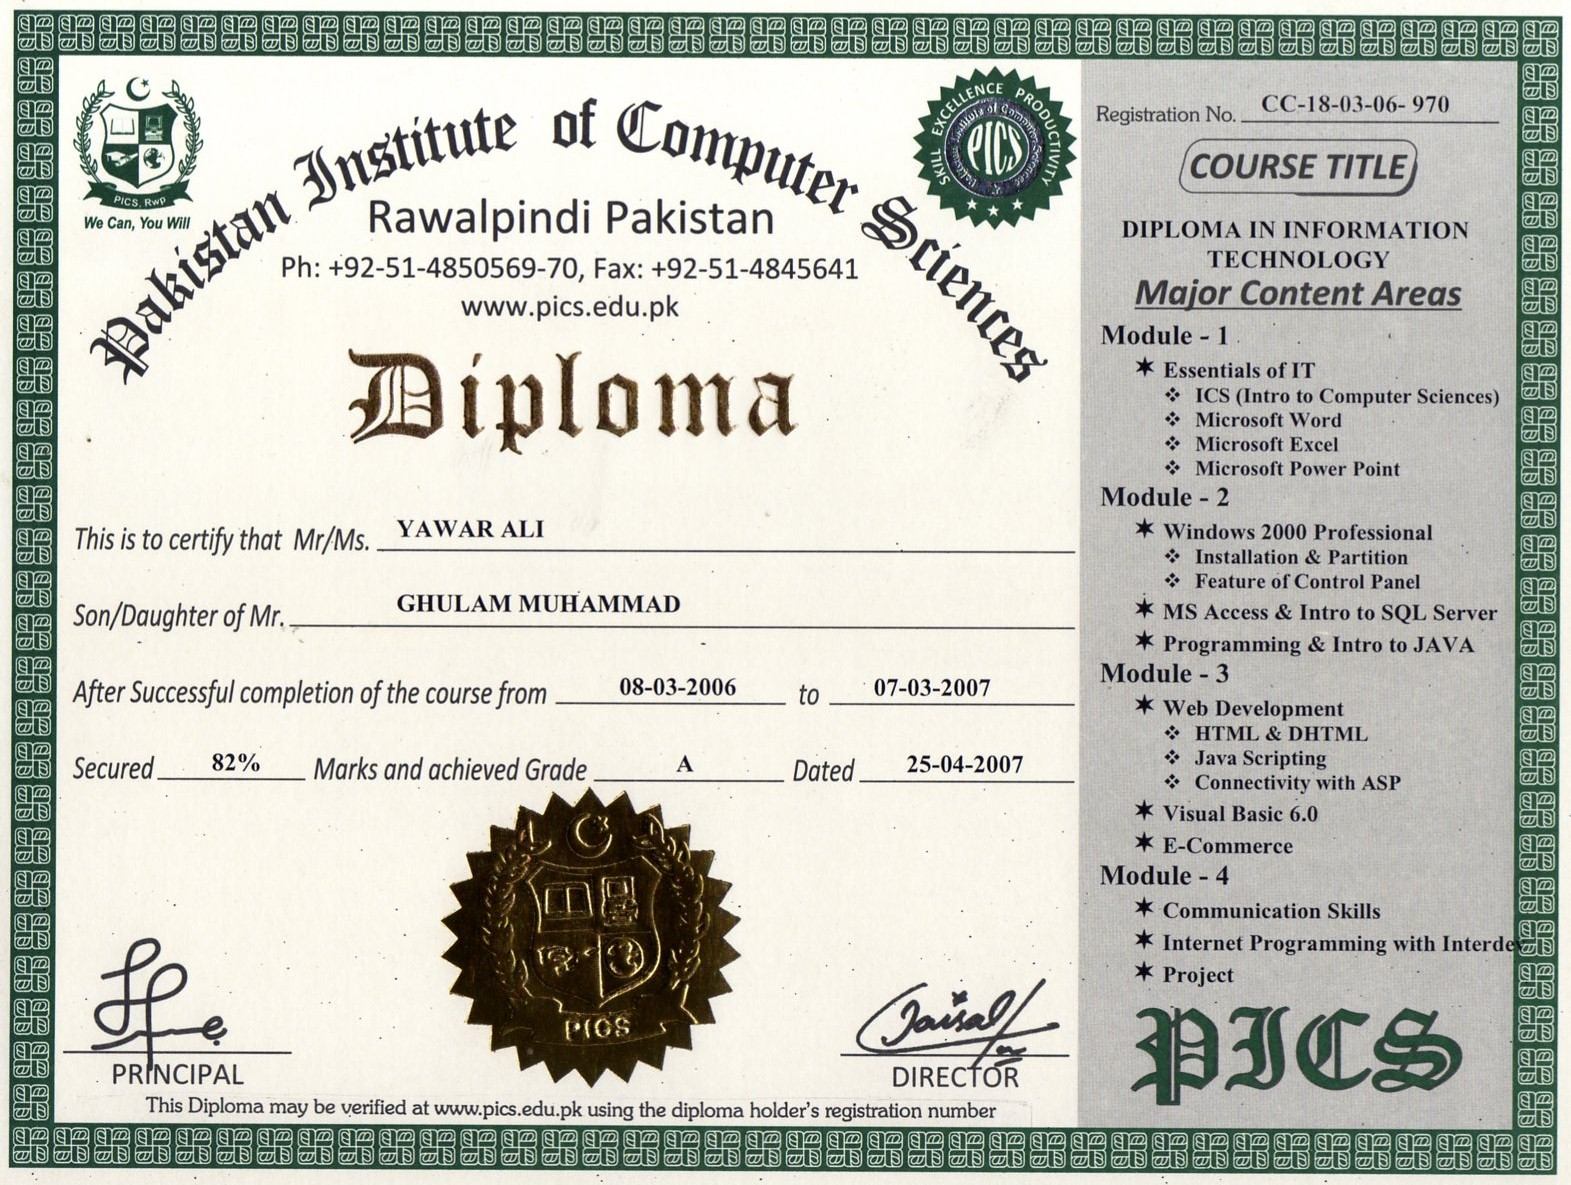 sample diploma certificate click here for list of certificates diplomas our certified students